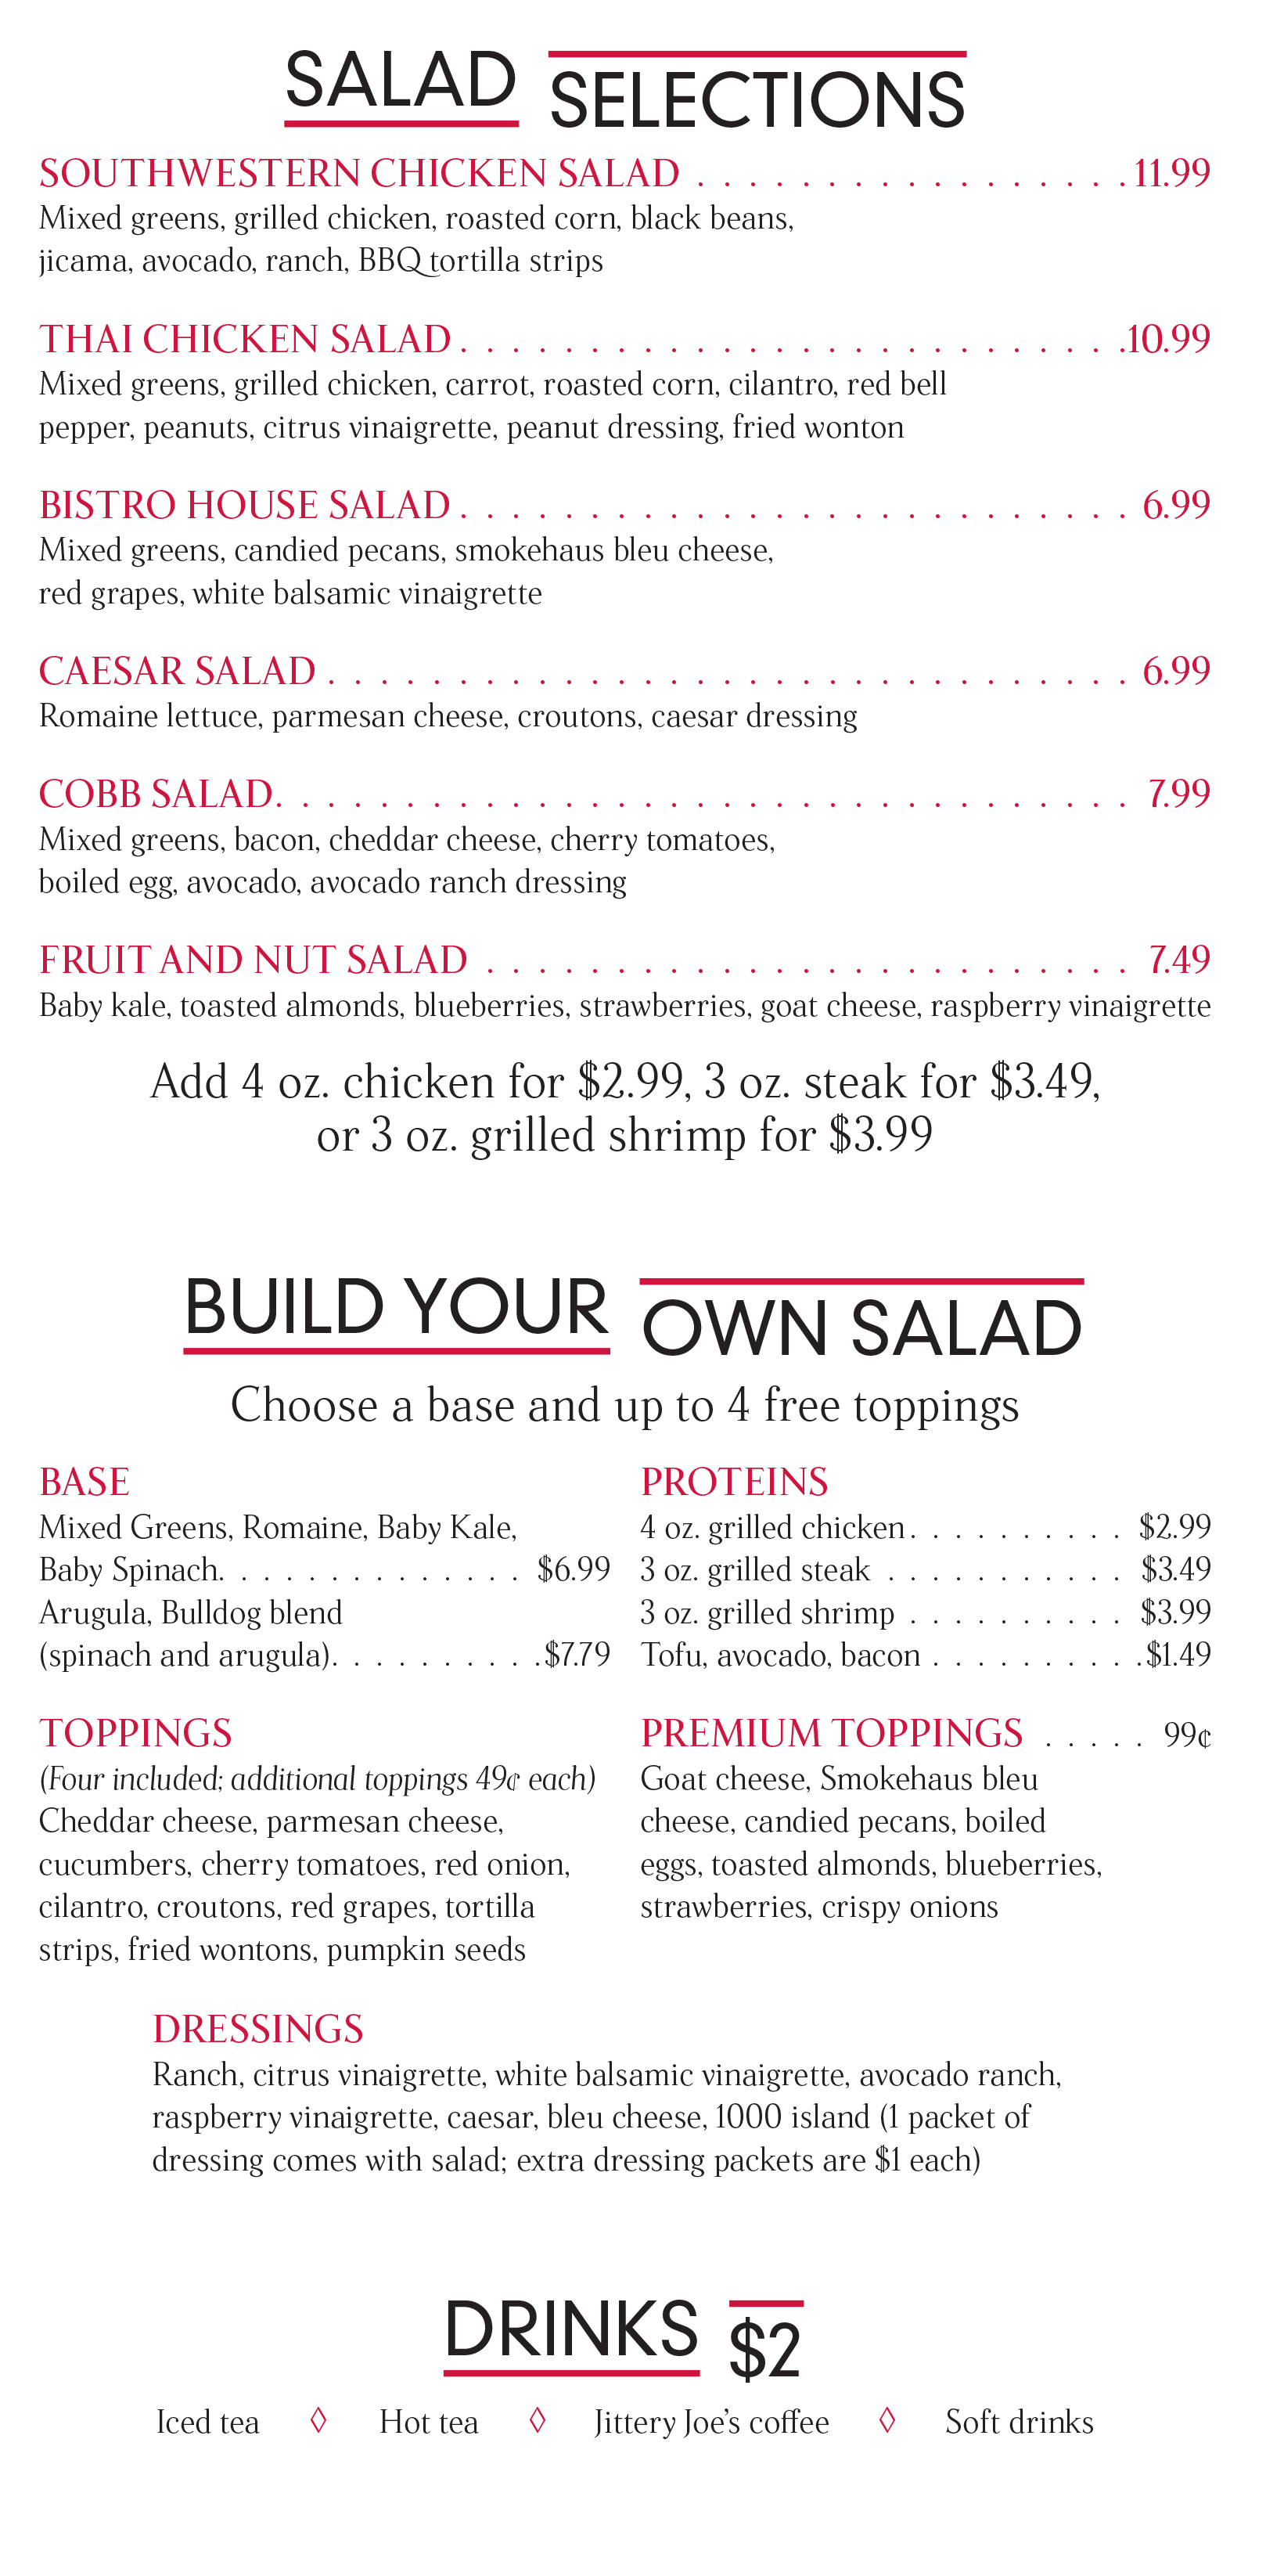 Salad options at the Bulldog Bistro